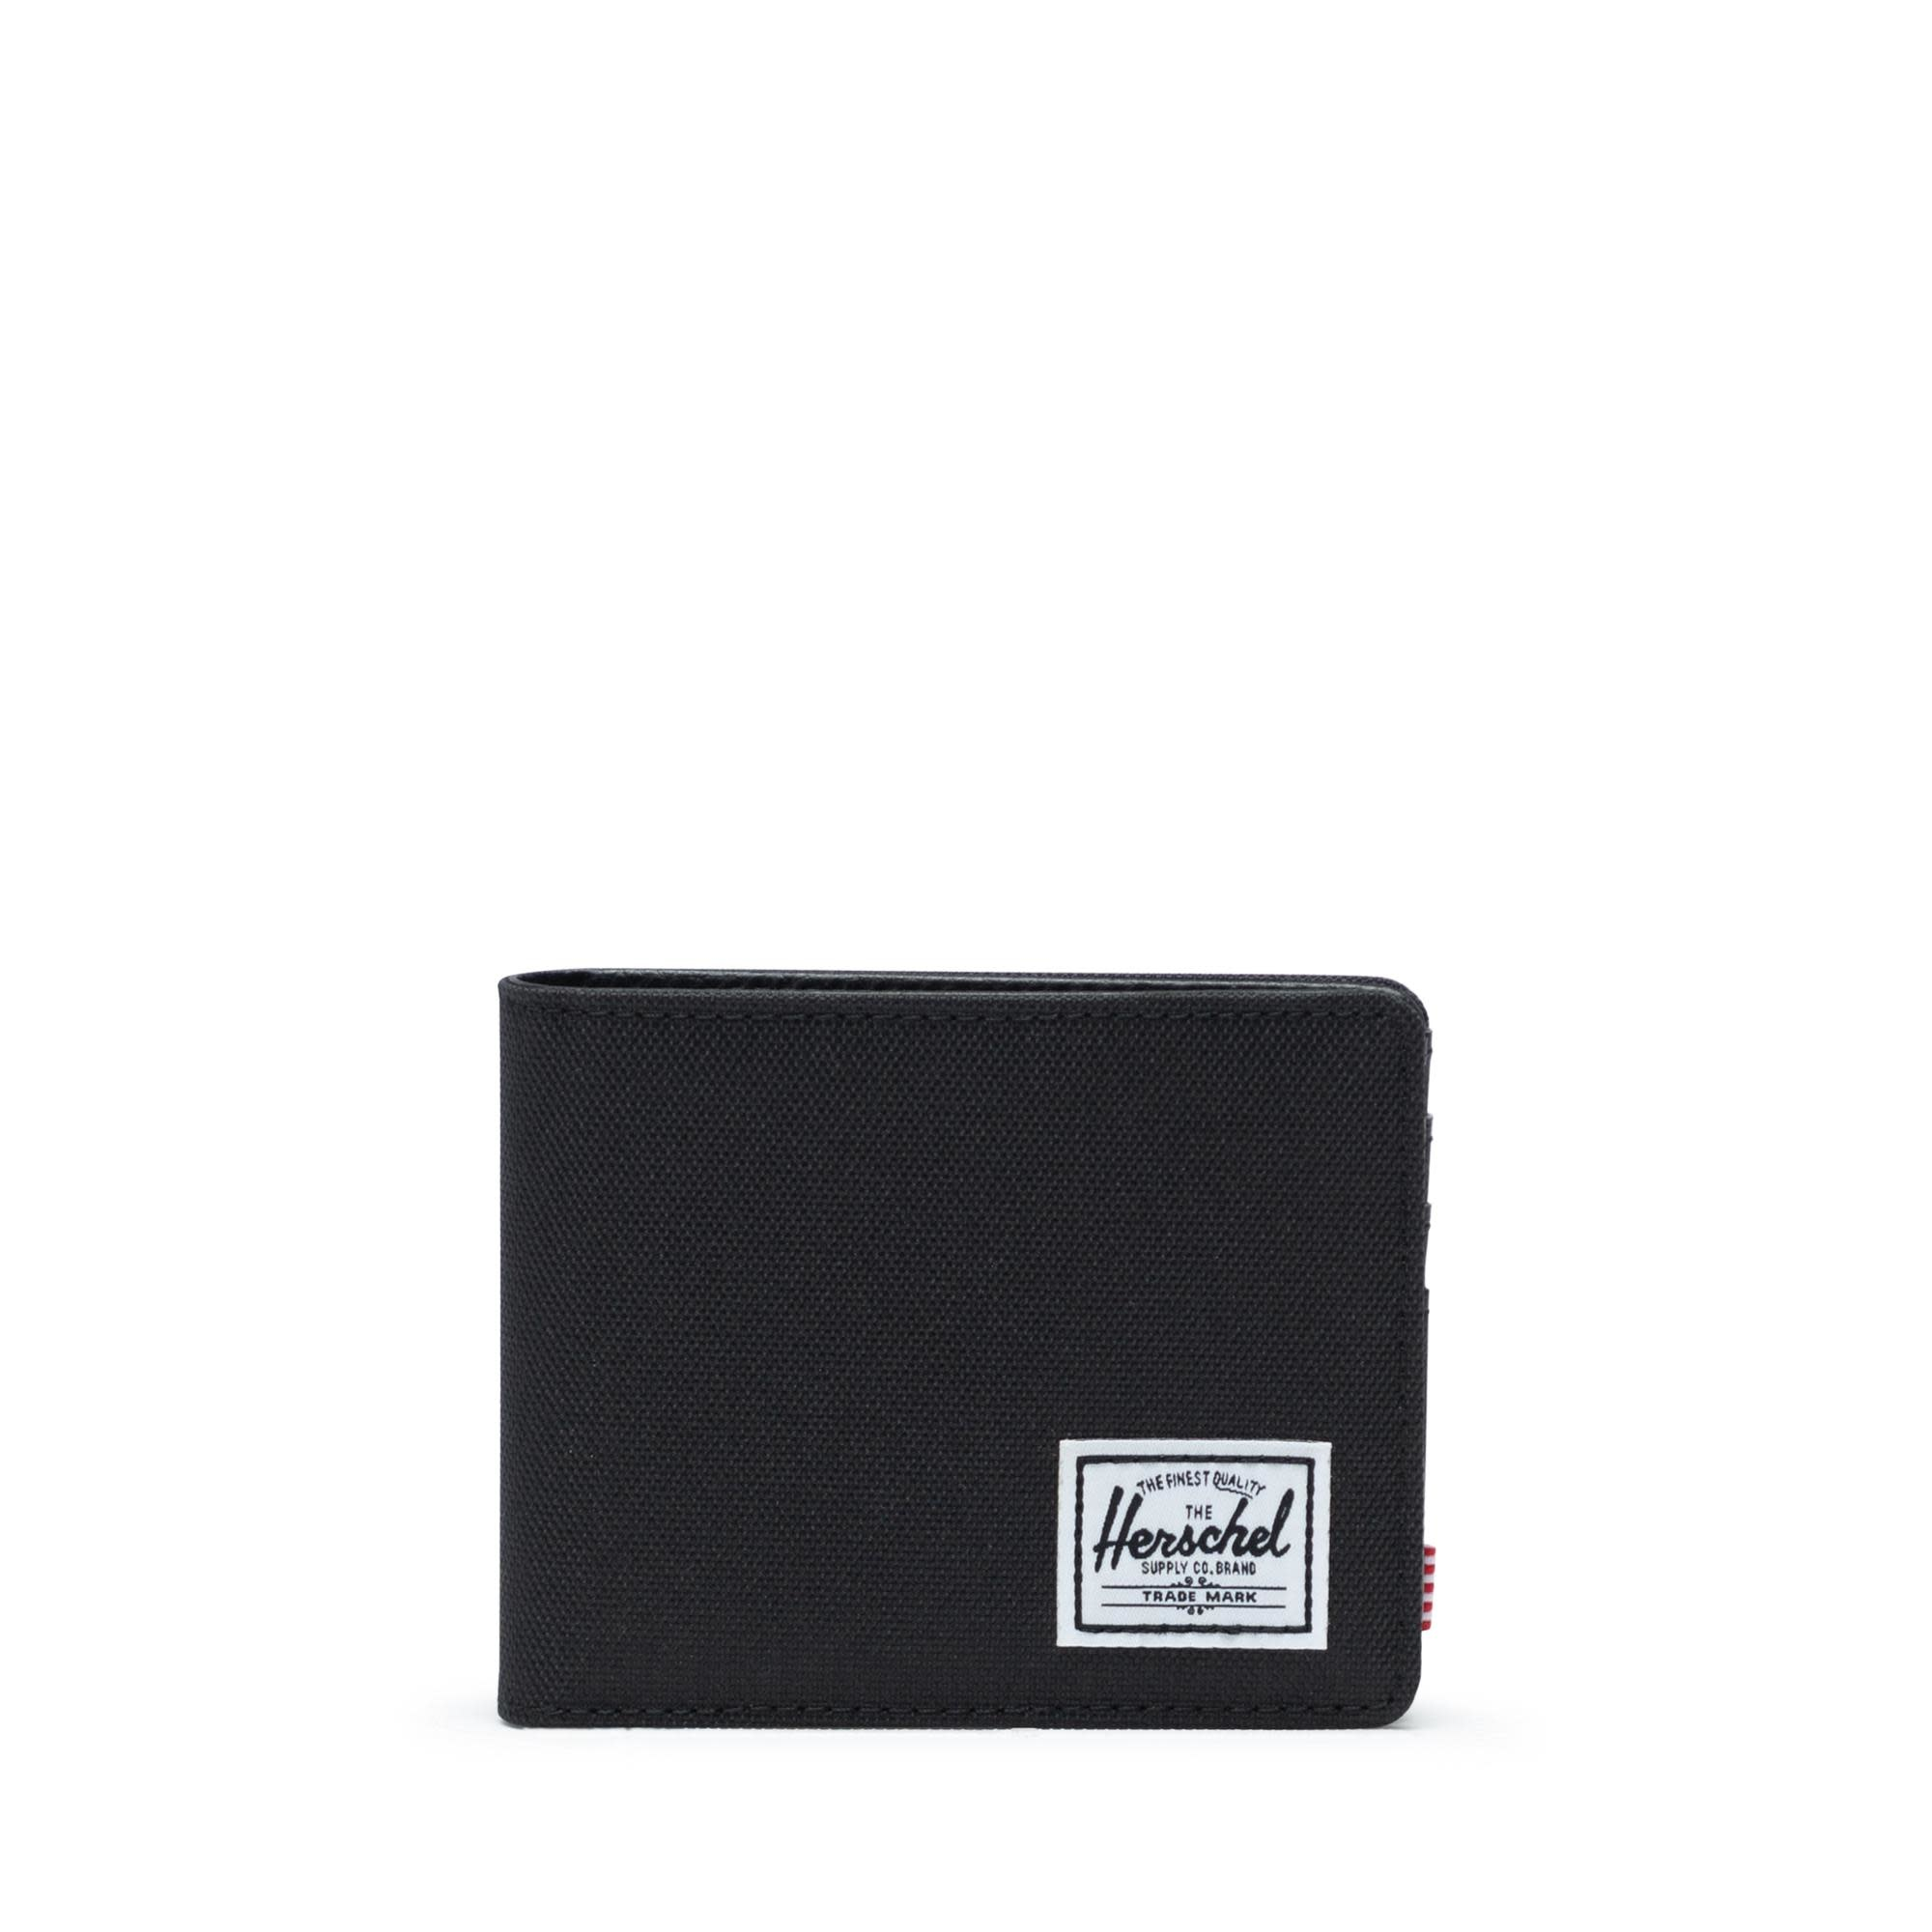 Herschel Supply Co. Herschel Hank Wallet - Black